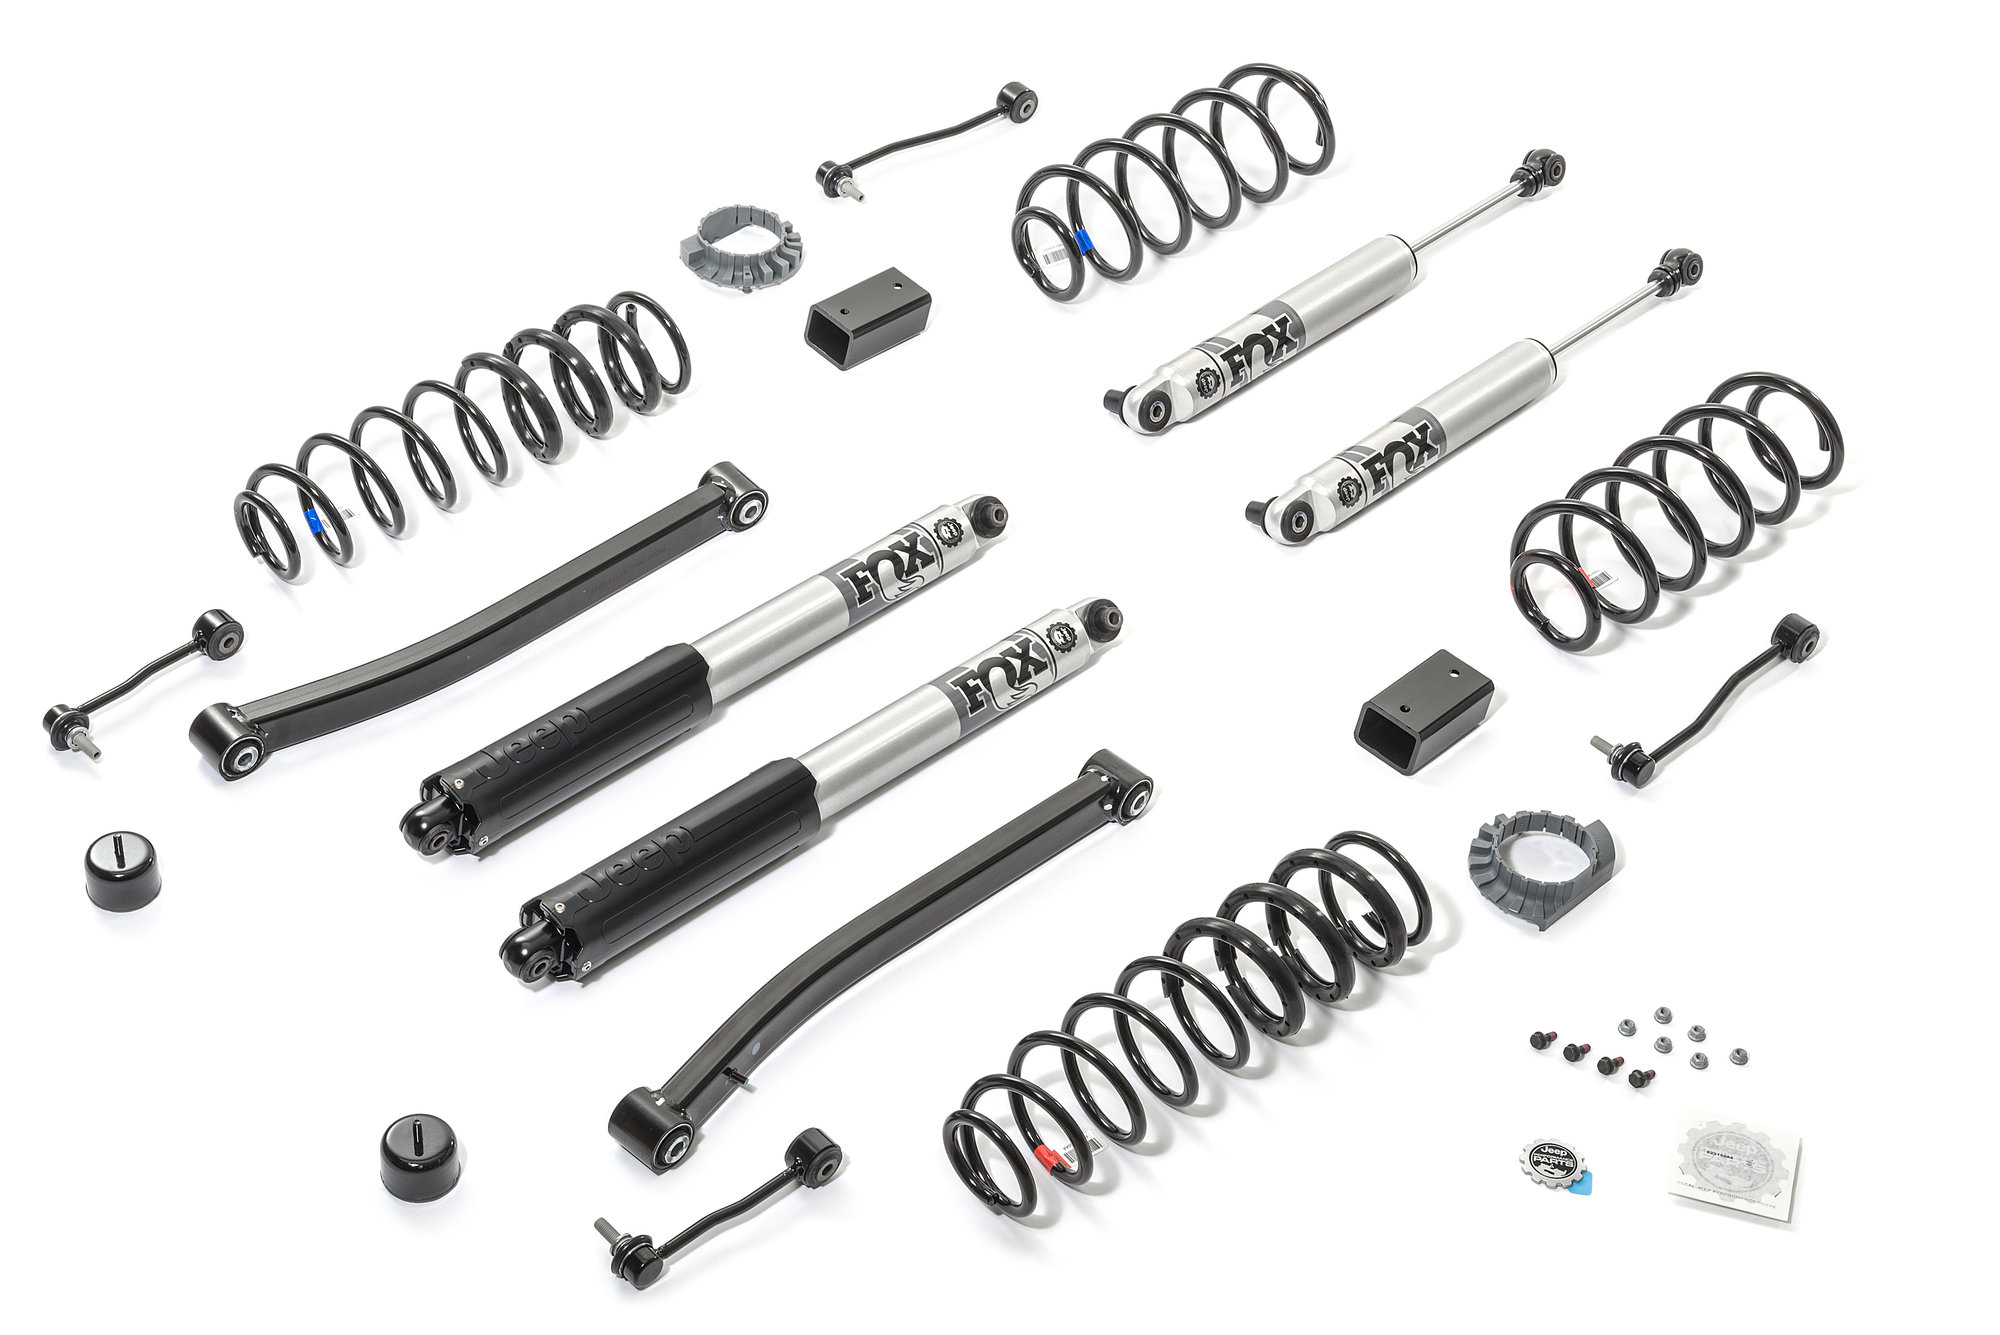 Mopar 2 Lift Kit With Fox Series Shocks For Jeep